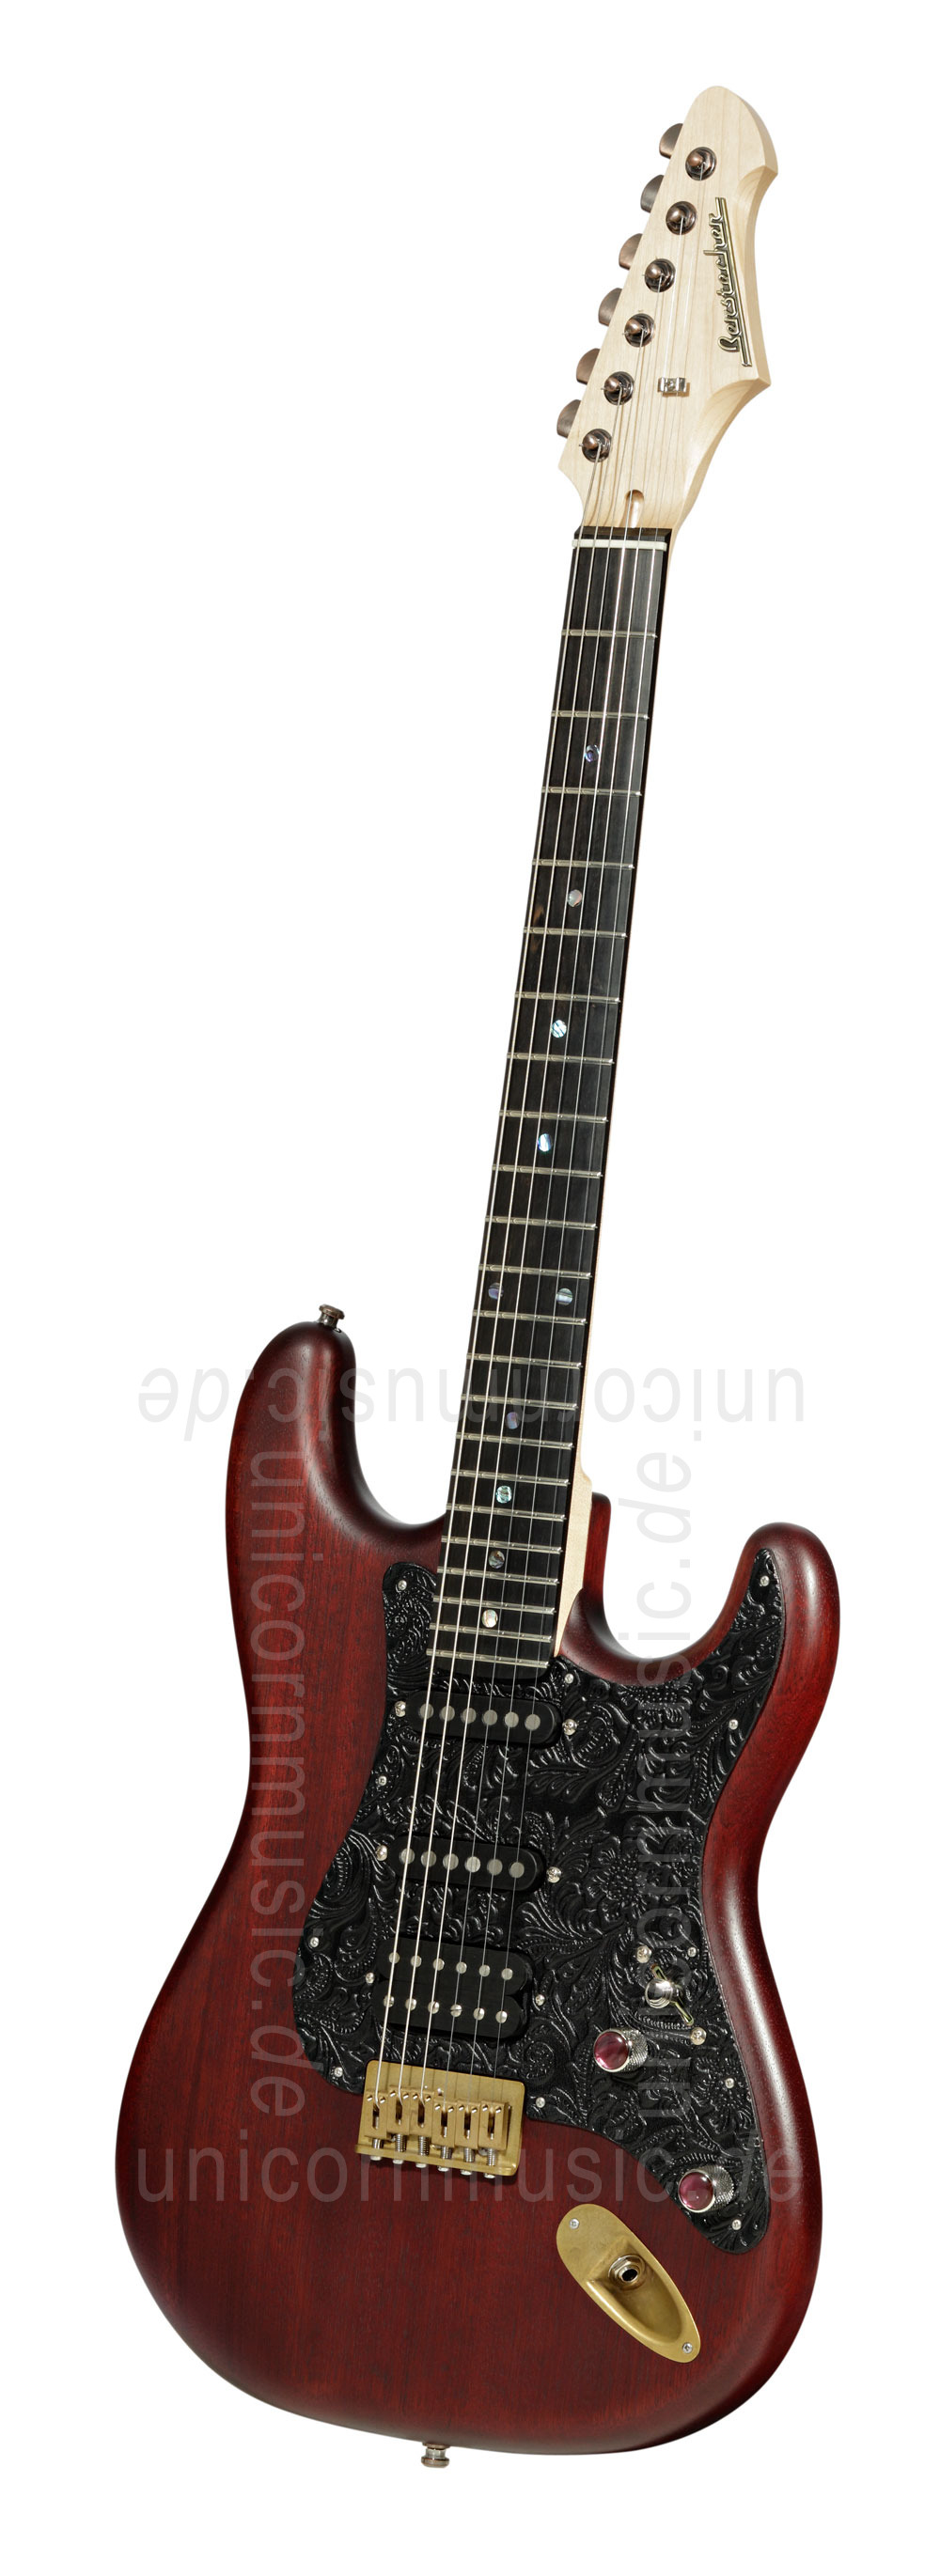 to article description / price Electric Guitar BERSTECHER Vintage 2018 - Black Cherry / Floral Black + hard case - made in Germany